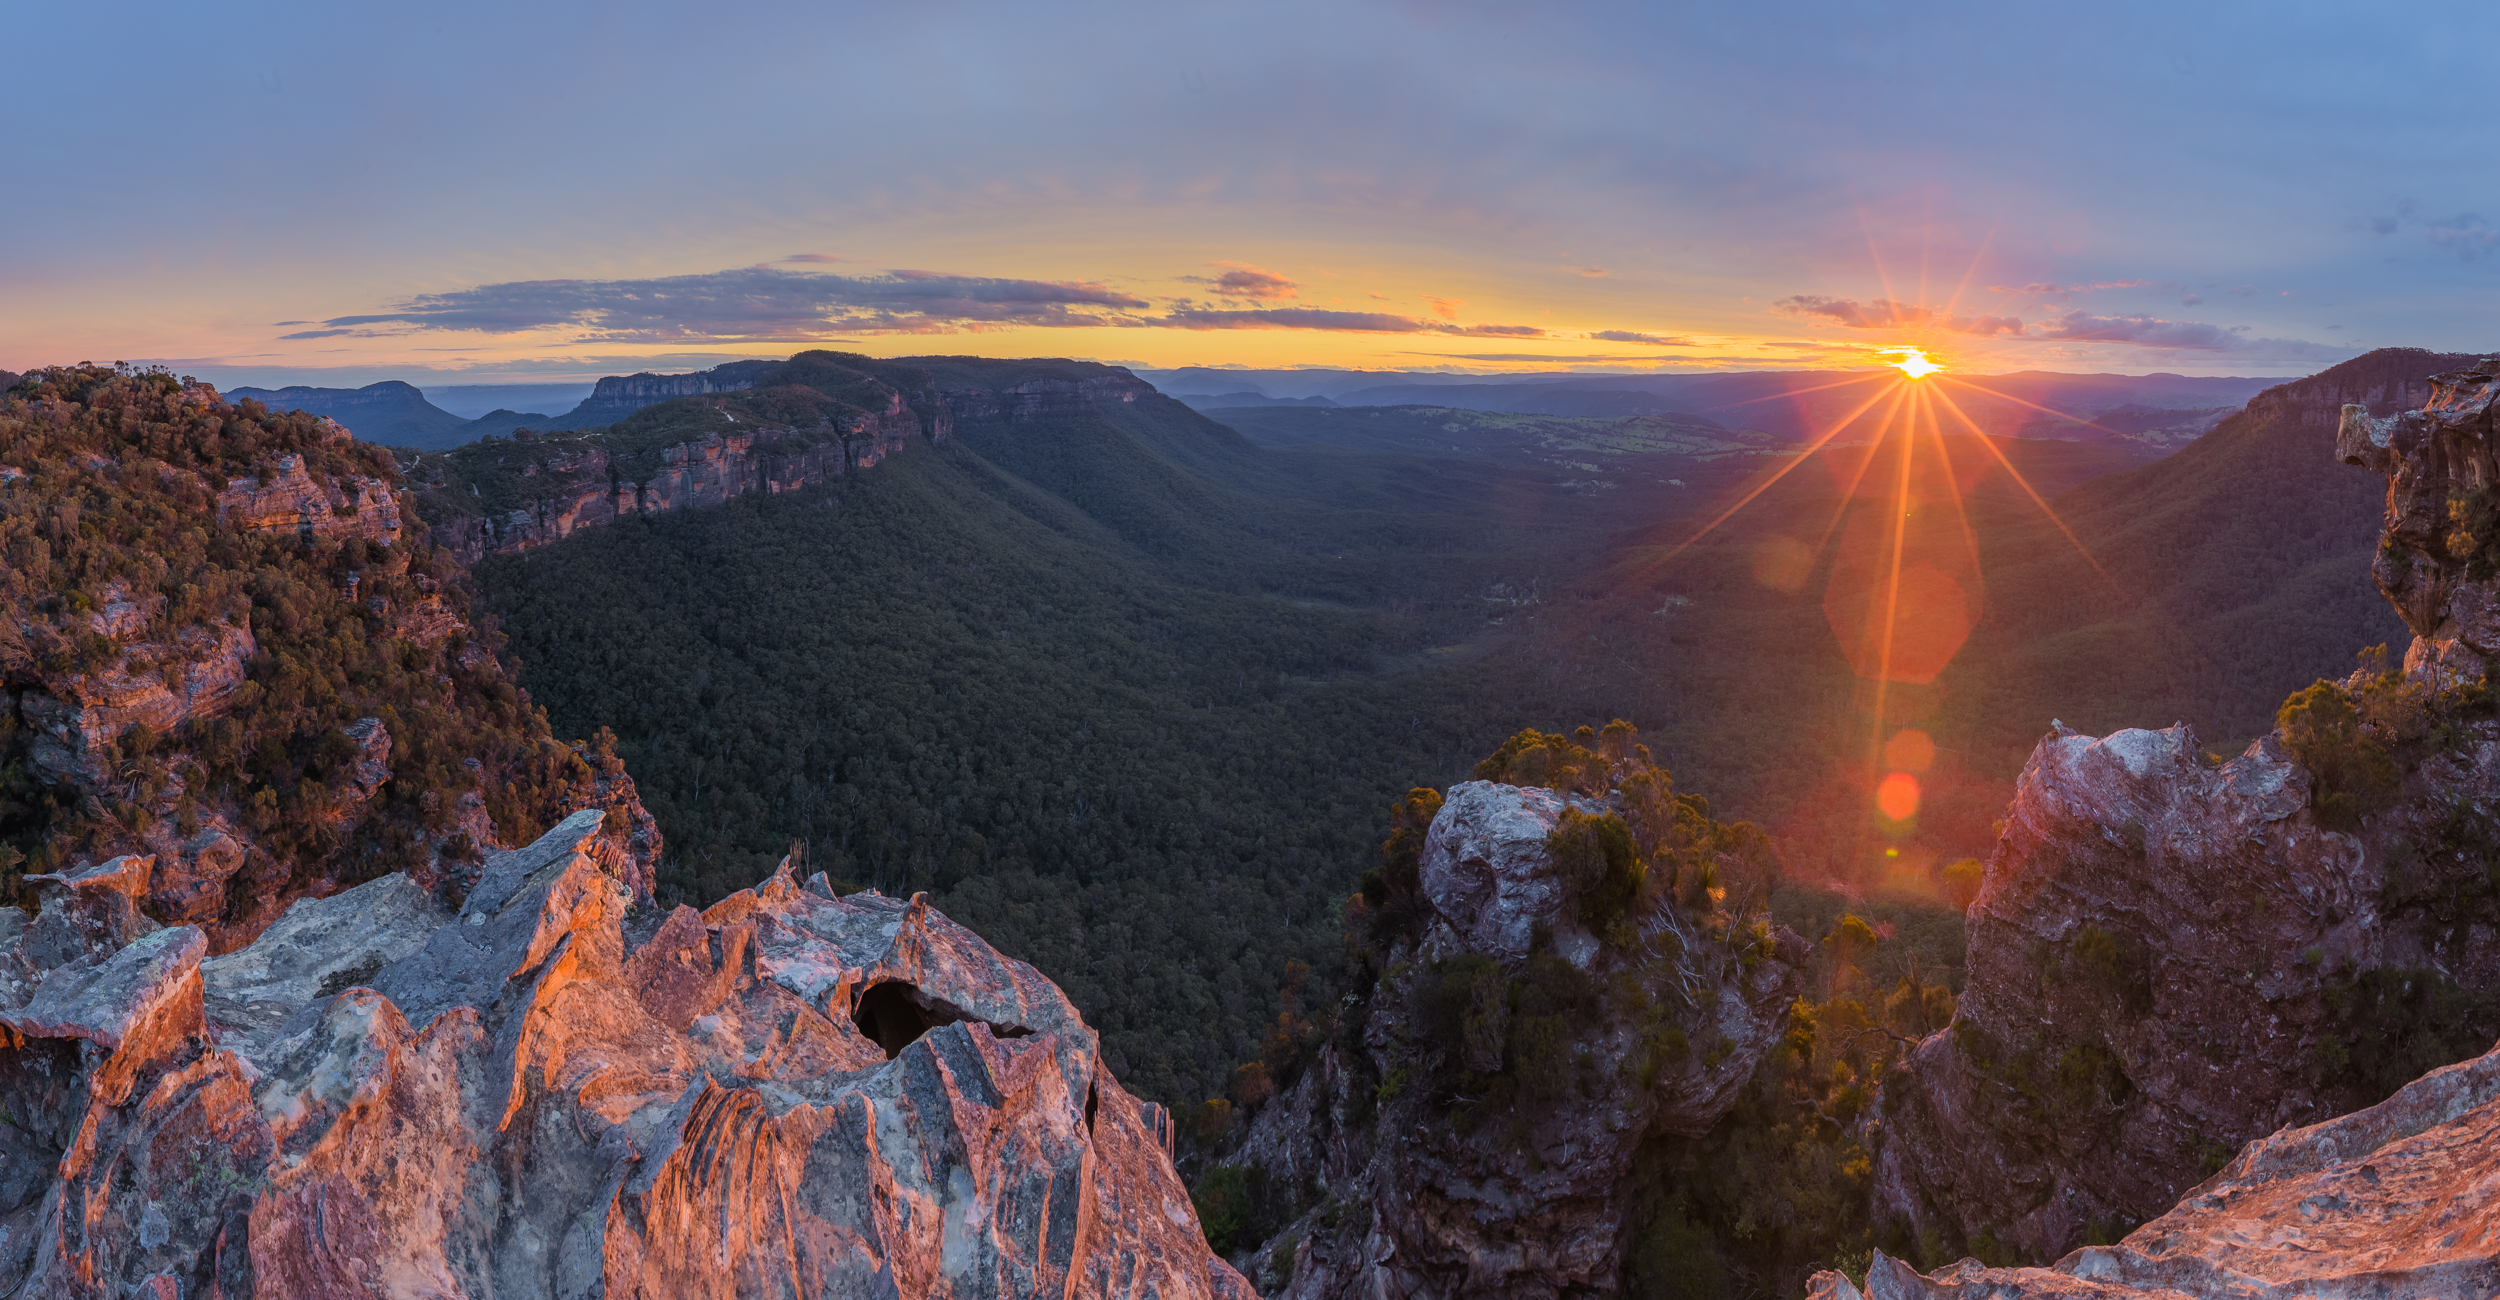 Blue Mountains sunset view